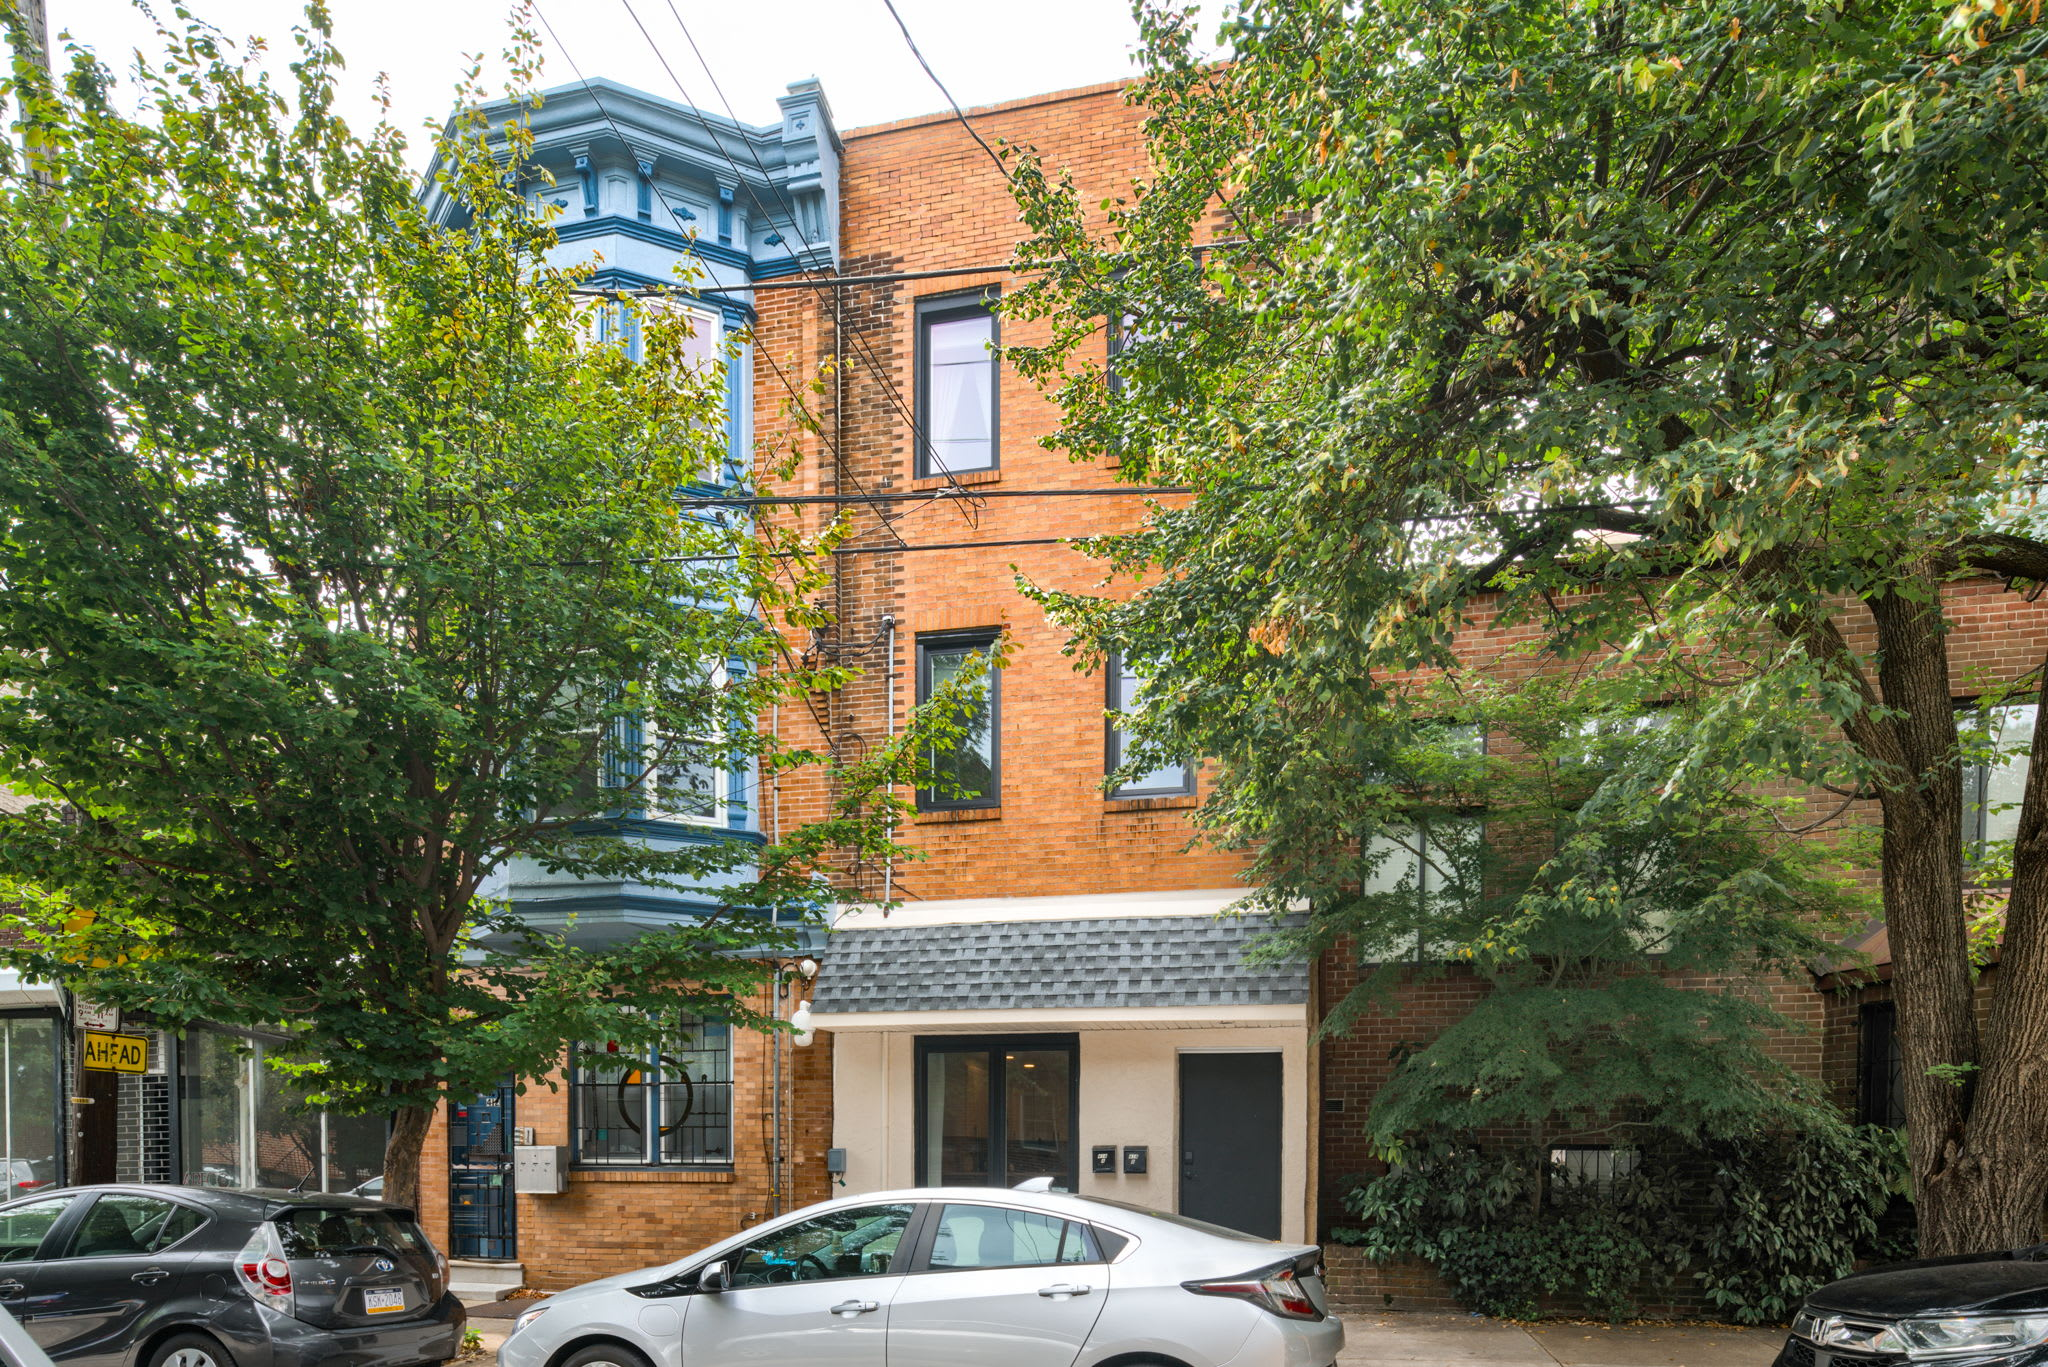 2BR in Heart of Queen Village - walk to everything!